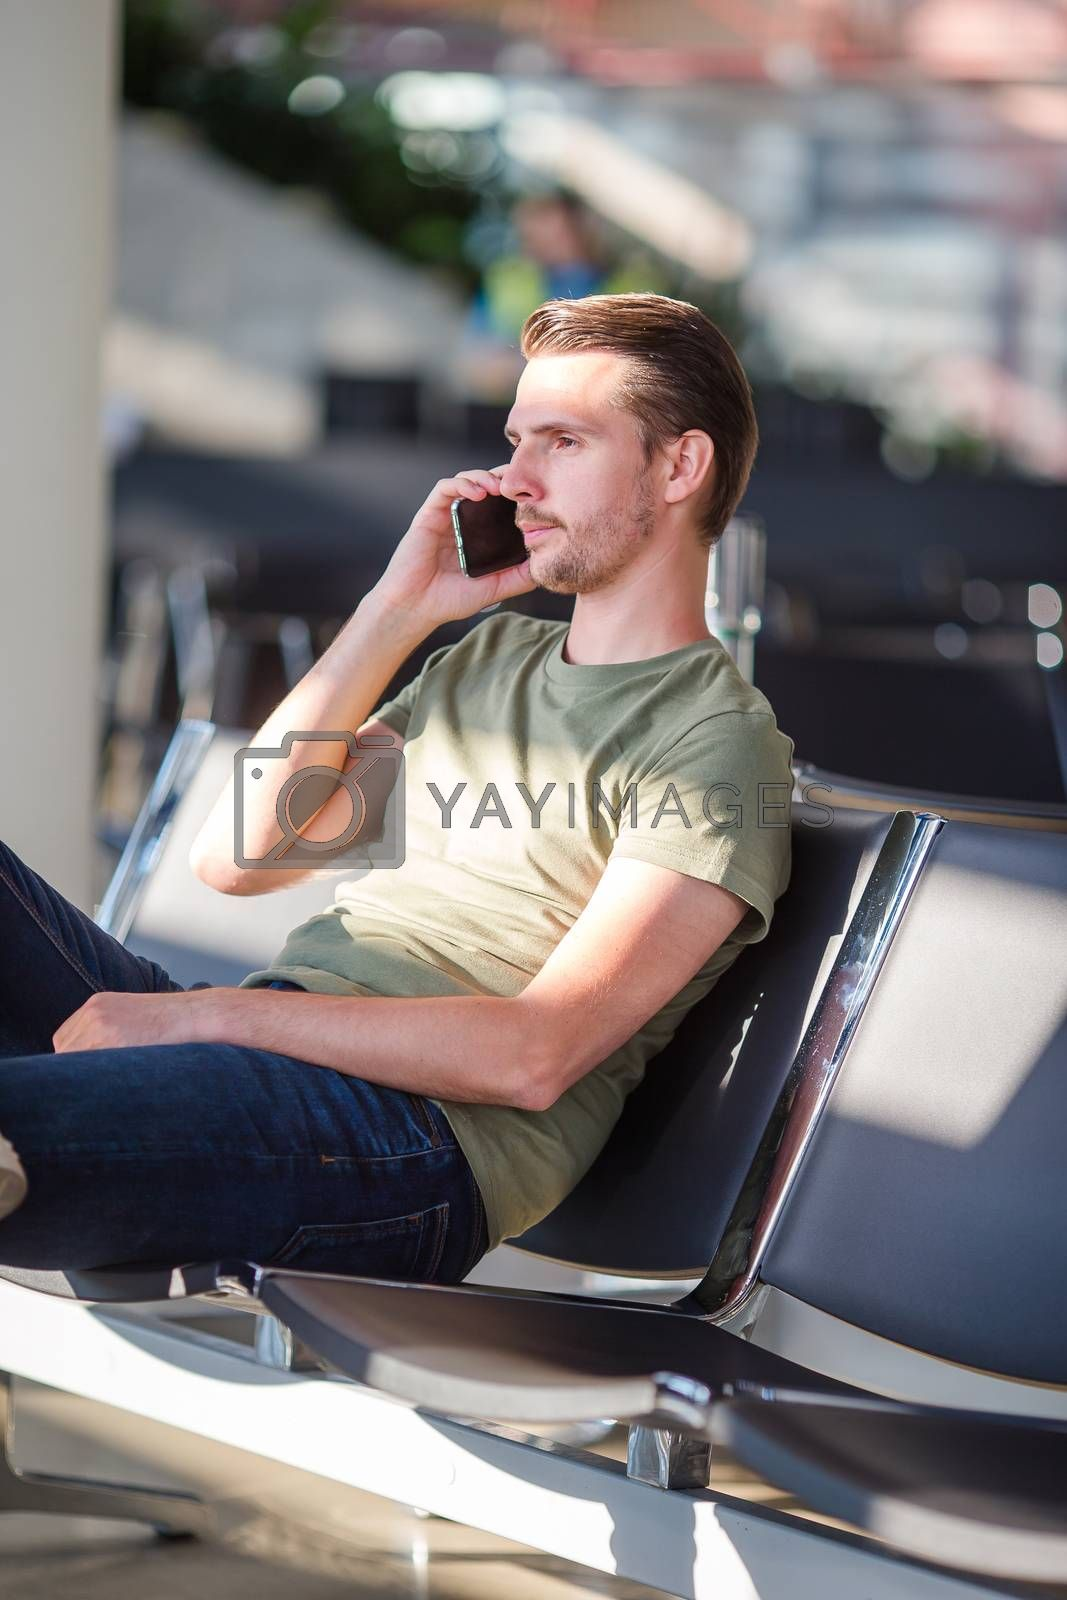 Passenger in an airport lounge waiting for flight aircraft. Young man talking by smartphone in airport waiting for boarding